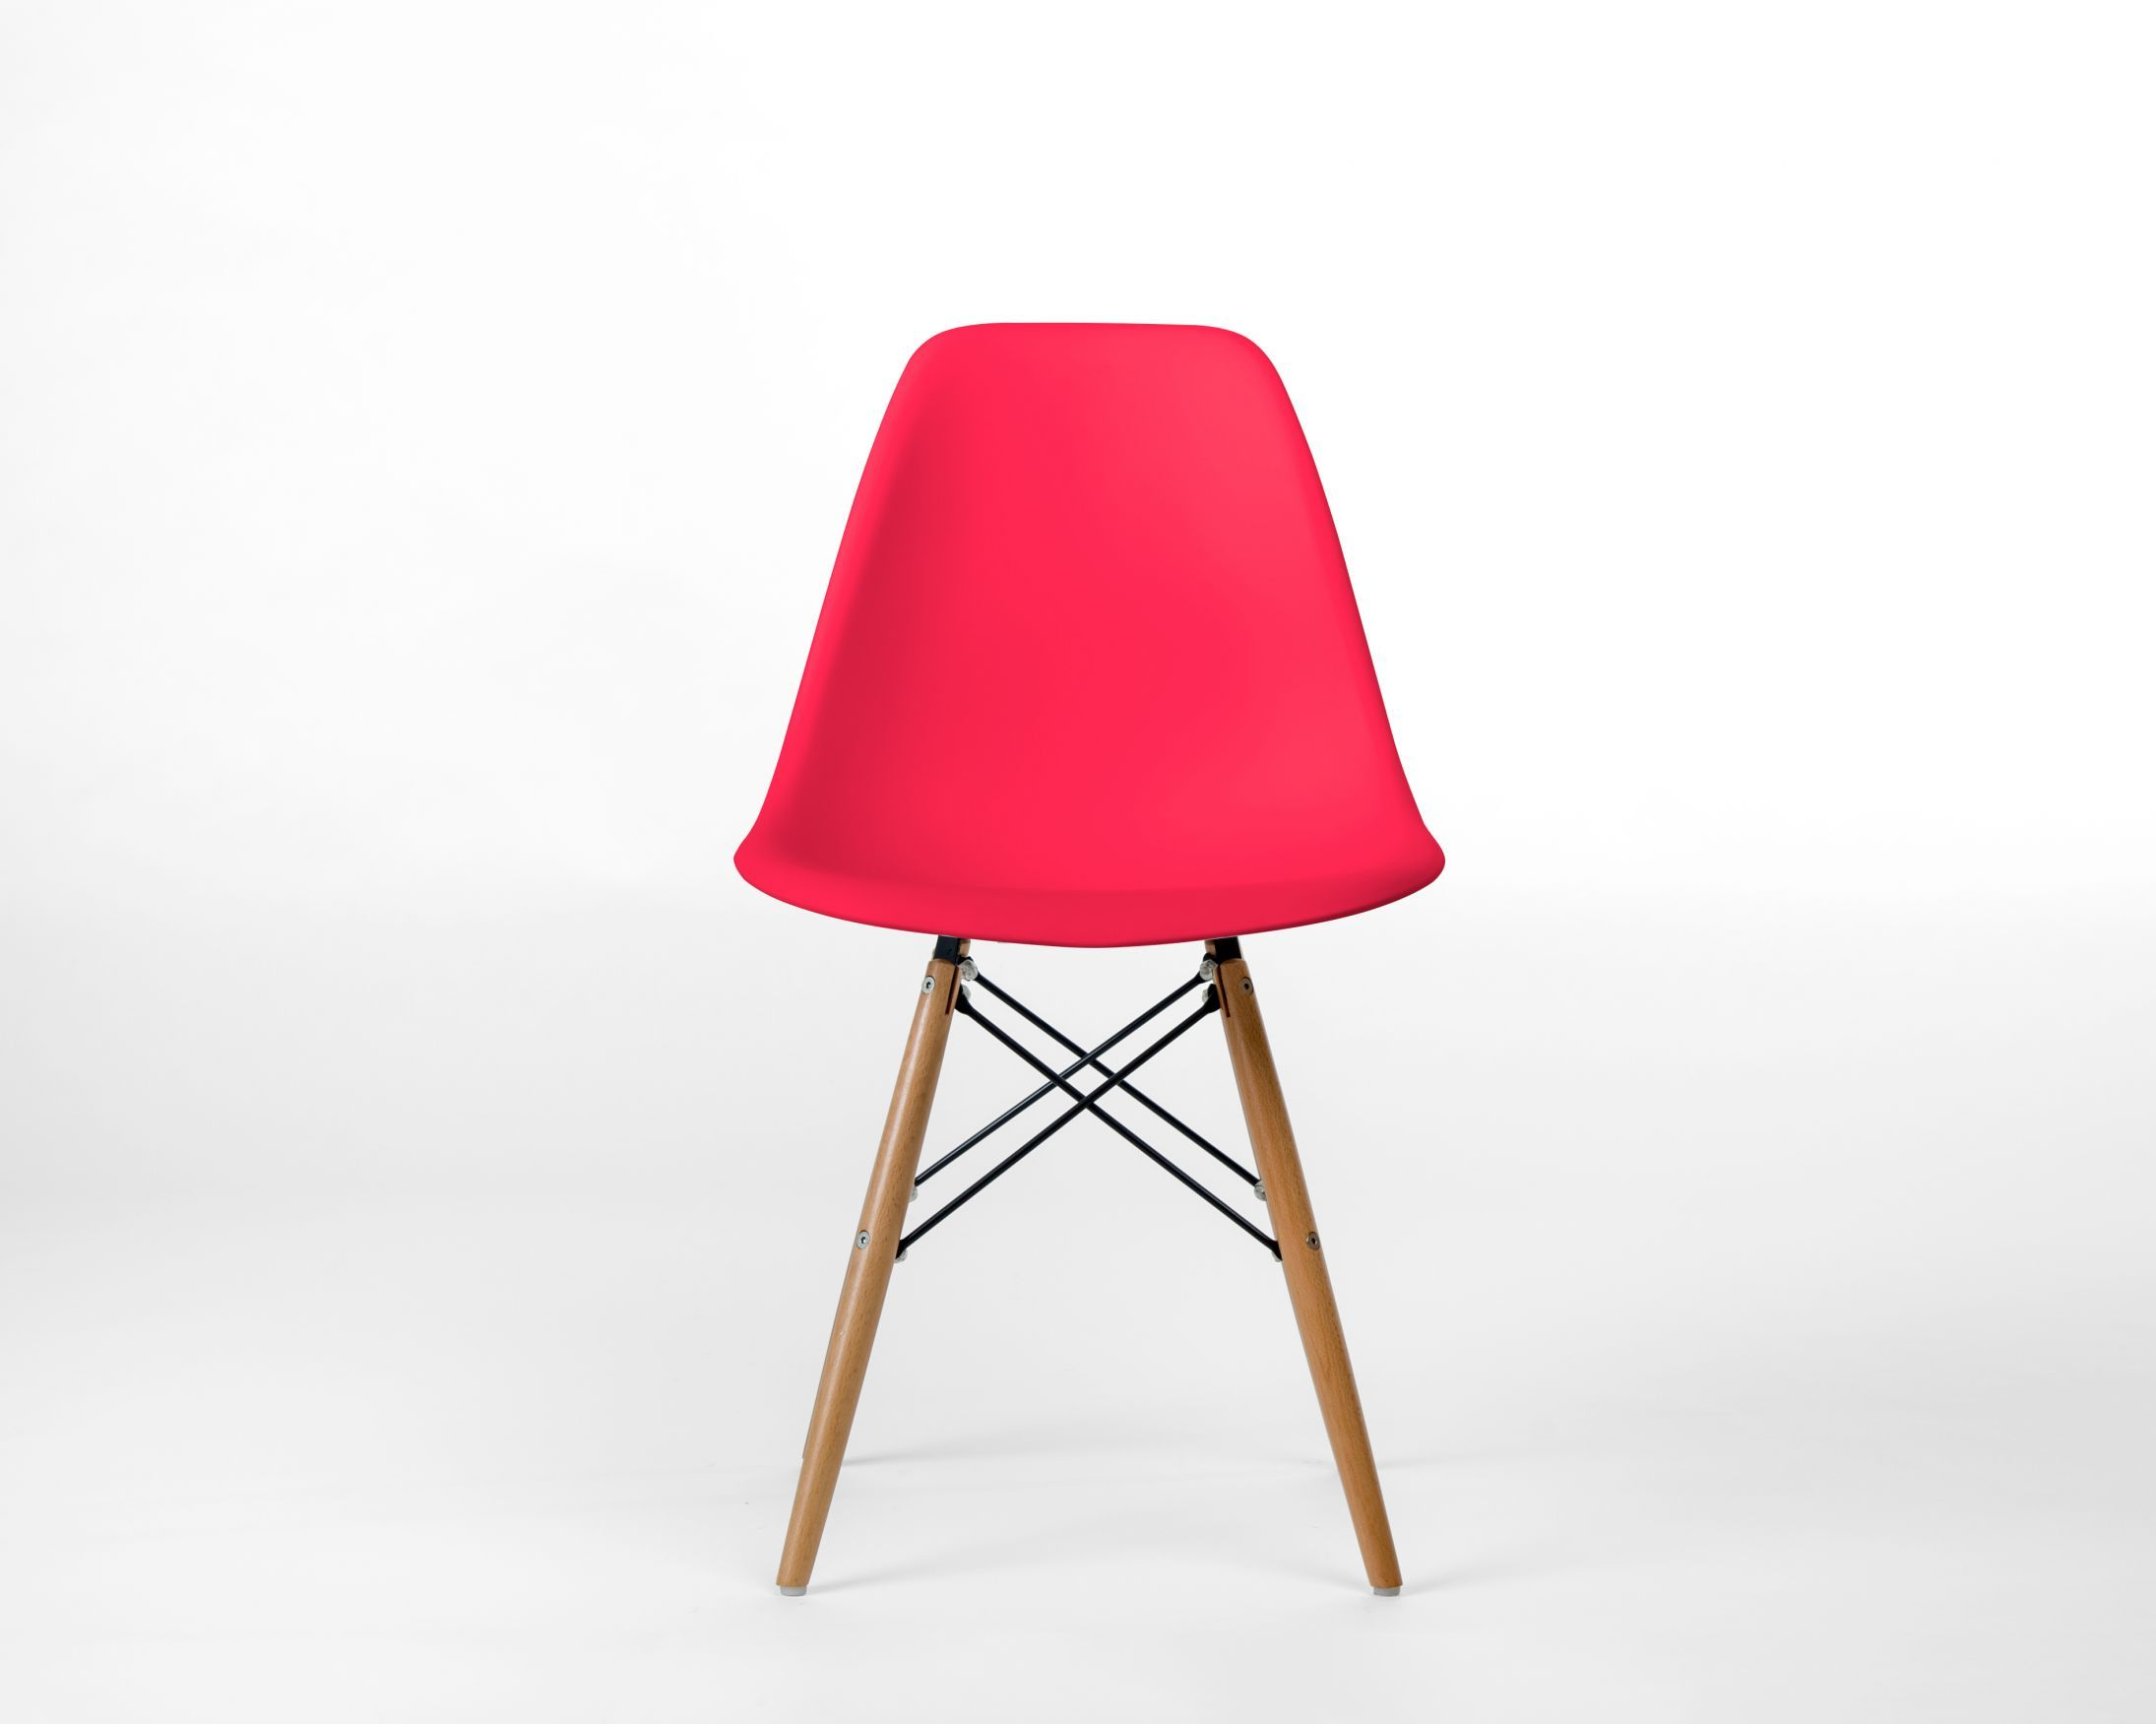 Dsw molded plastic side chair wooden dowel base rove